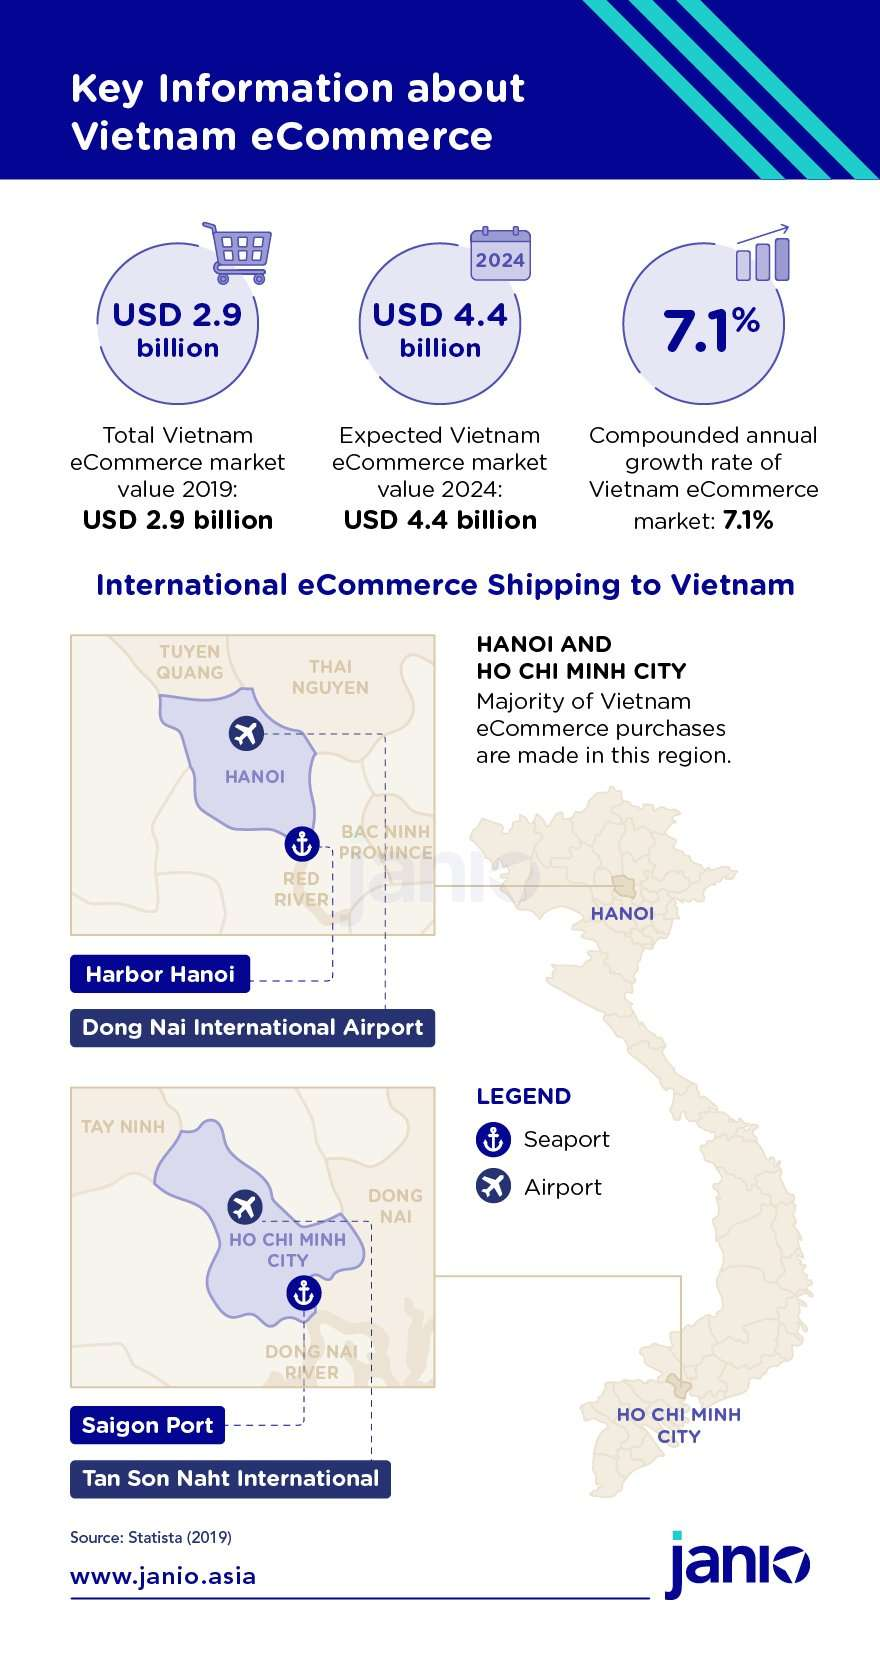 Key Information about Vietnam eCommerce - eCommerce market size in 2019 and expected growth, main airport and seaport for Vietnam